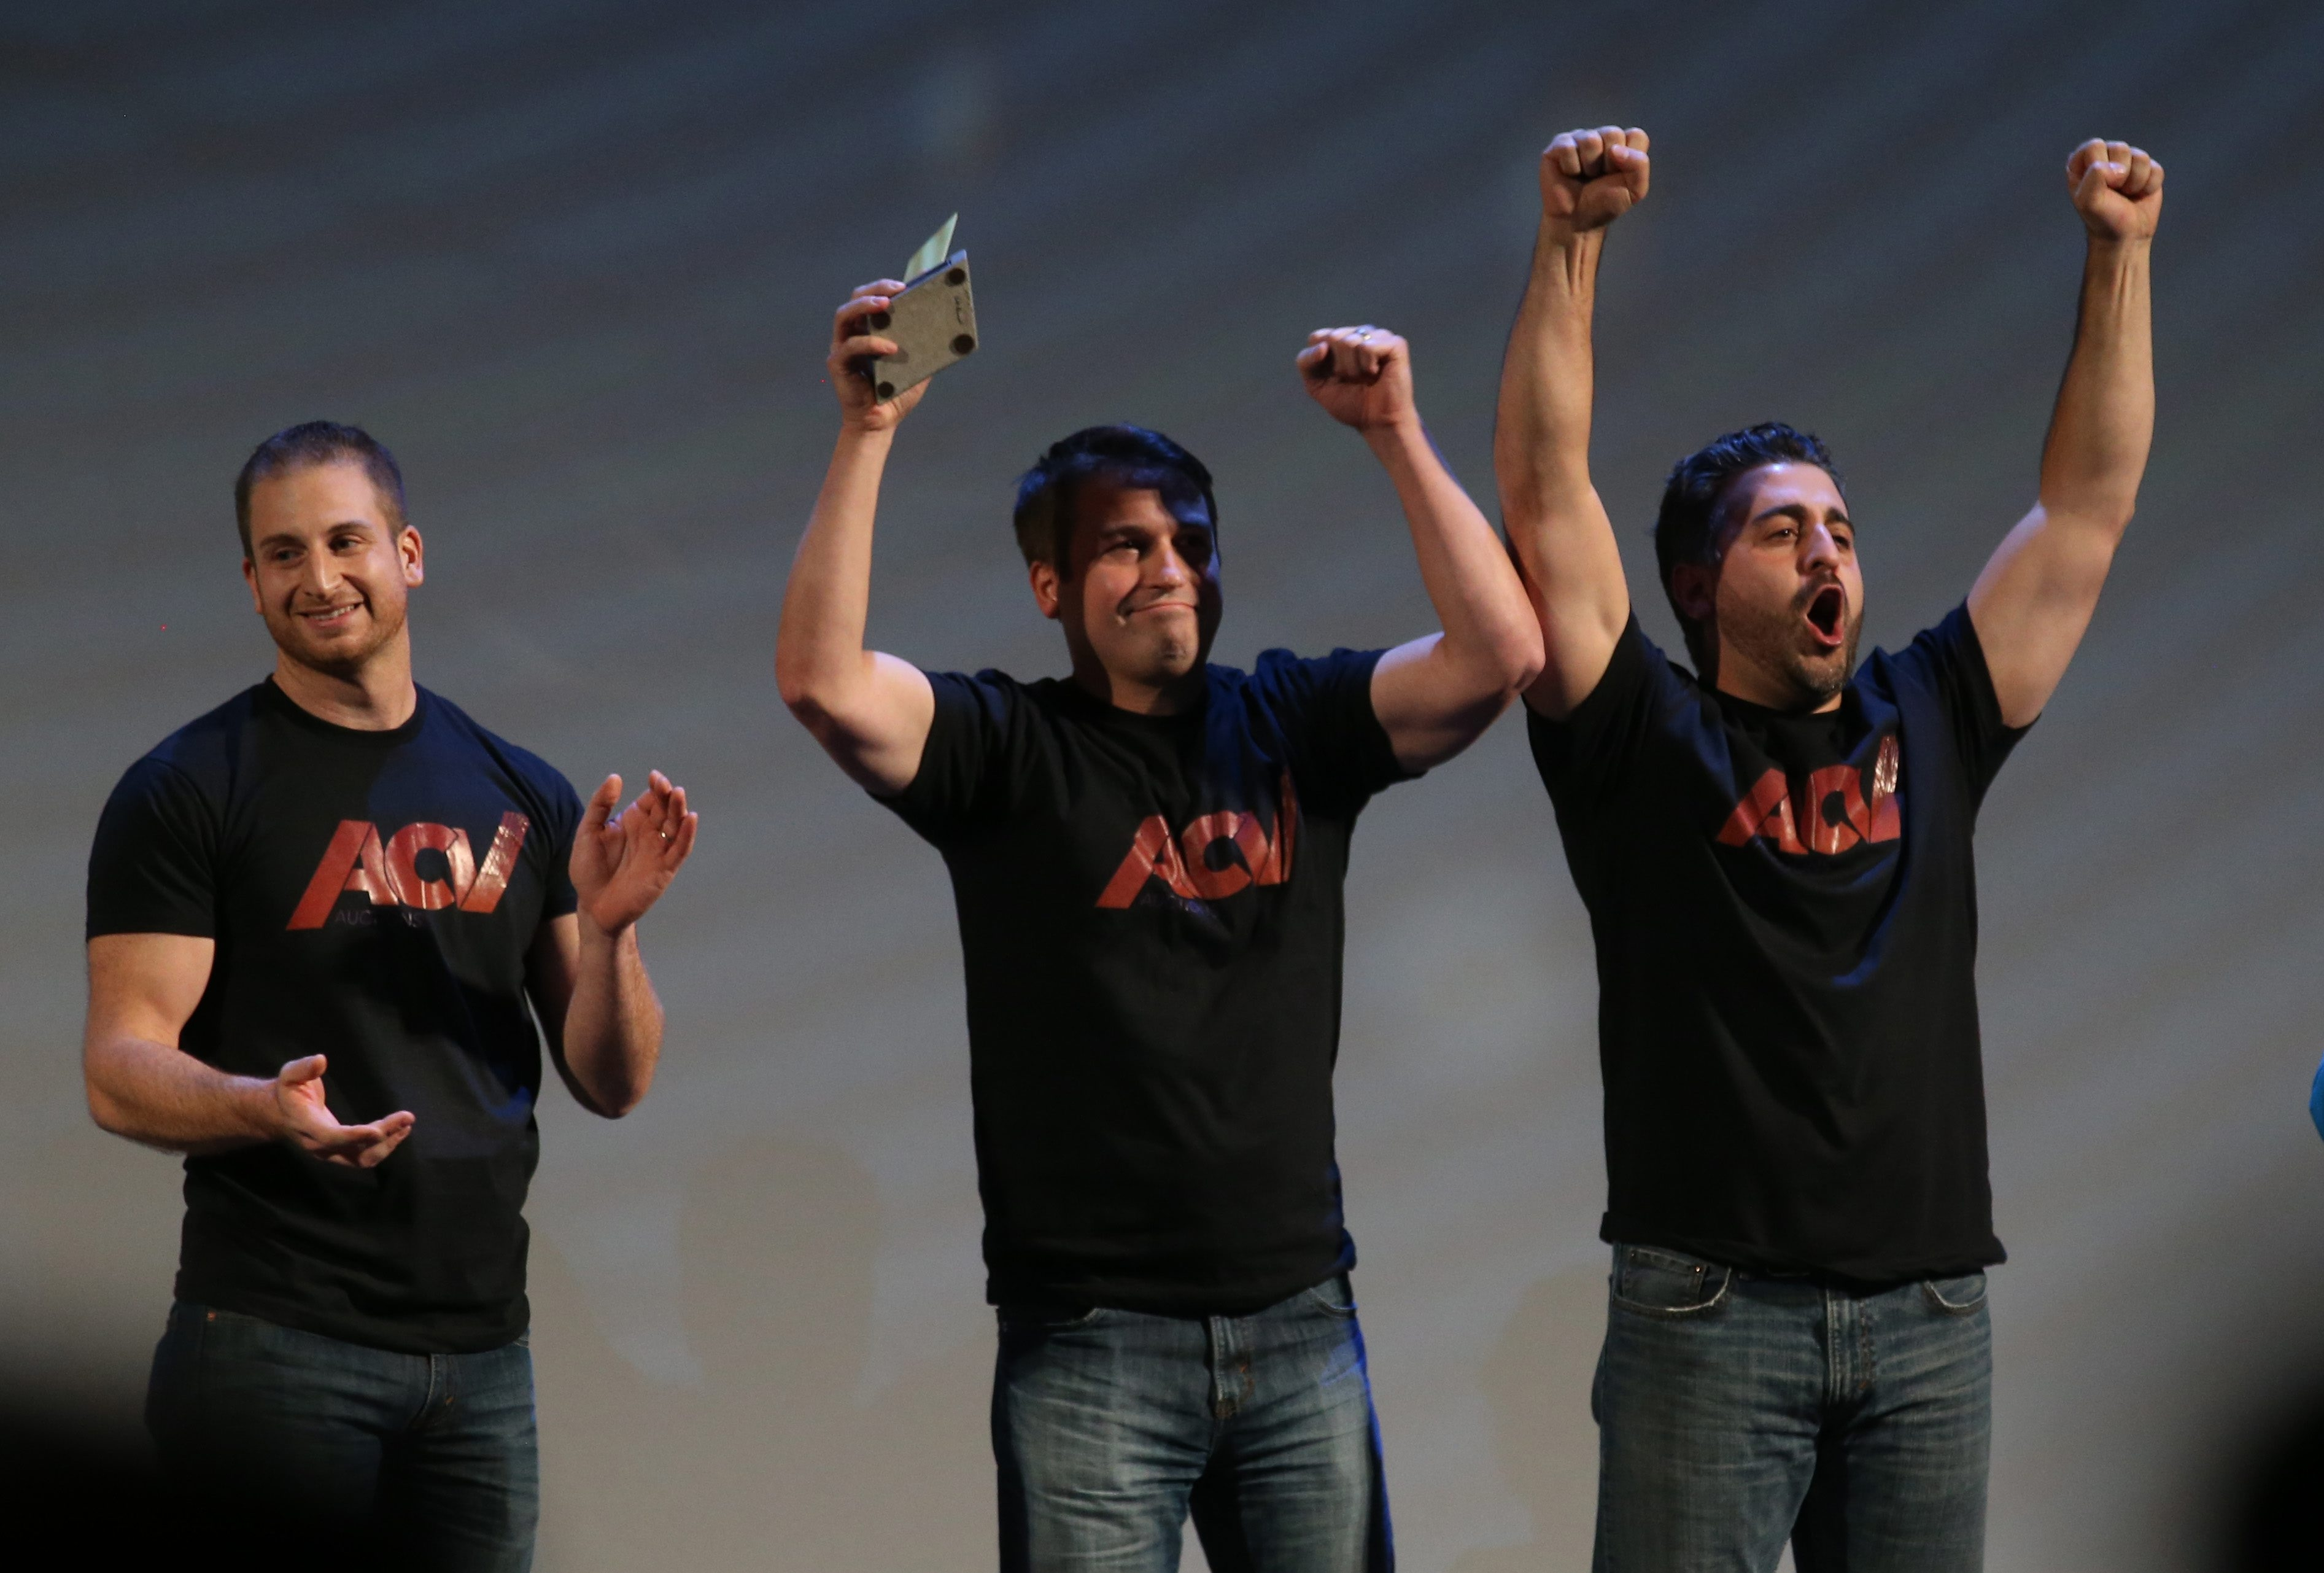 ACV Auctions won the million dollars in the 43 North business plan competition during which was announced at Shea's Performing Arts Center, Thursday, Oct. 29, 2015.  ACV Auctions is a live wholesale marketplace for dealer-only wholesale auctions, conducted via a smartphone app. From left are Joe Nieman, Dan Magnuszewski and Jack Greco.  (Sharon Cantillon/Buffalo News)